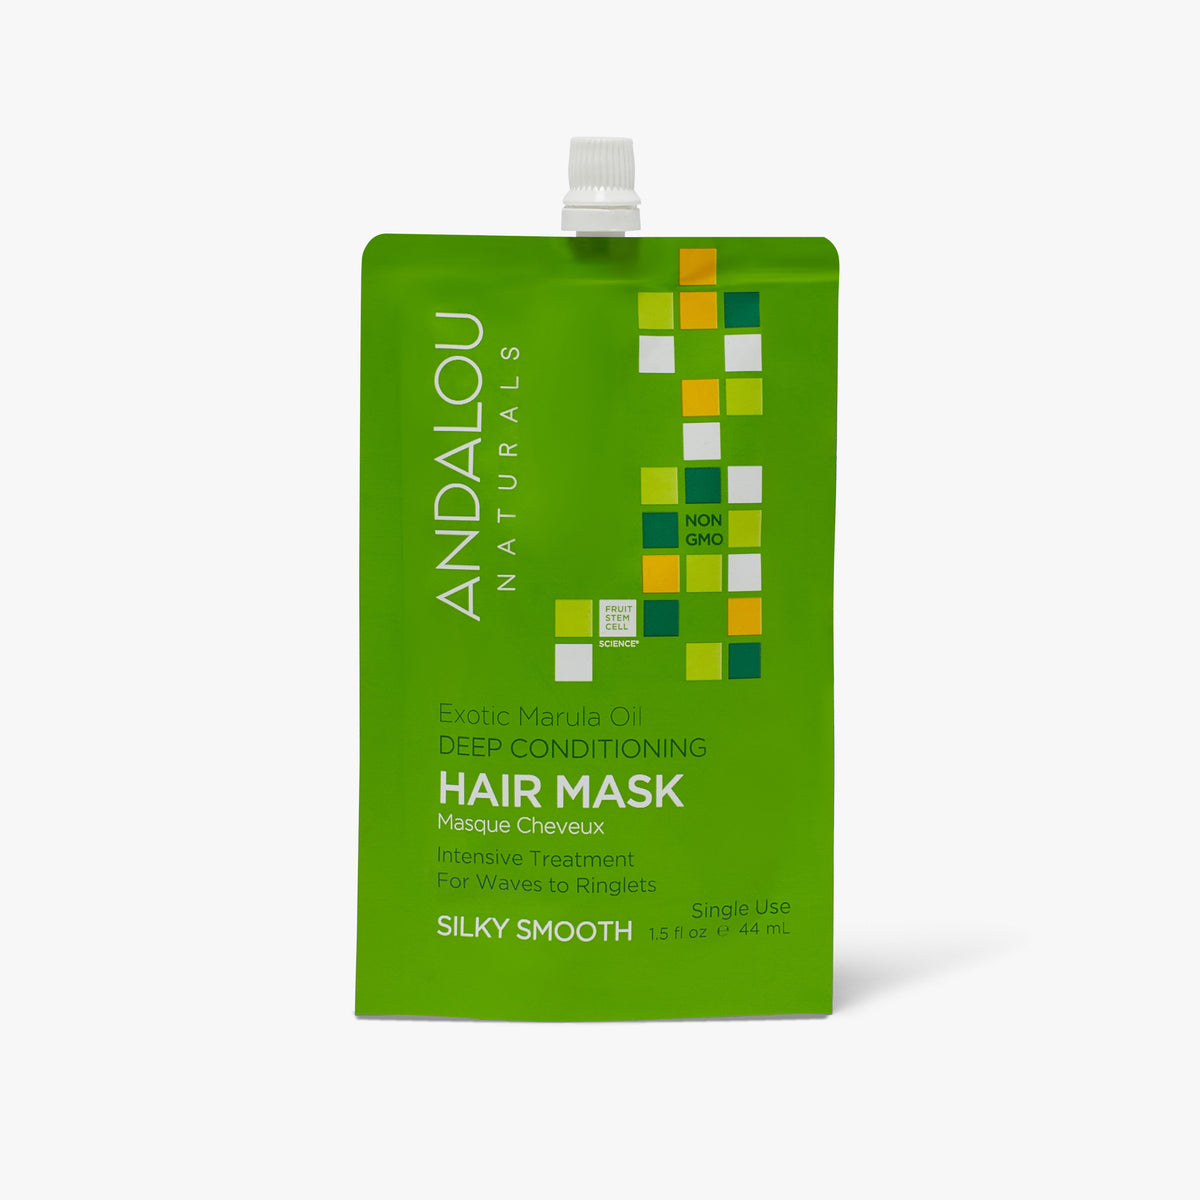 Exotic Marula Oil Silky Smooth Deep Conditioning Hair Mask